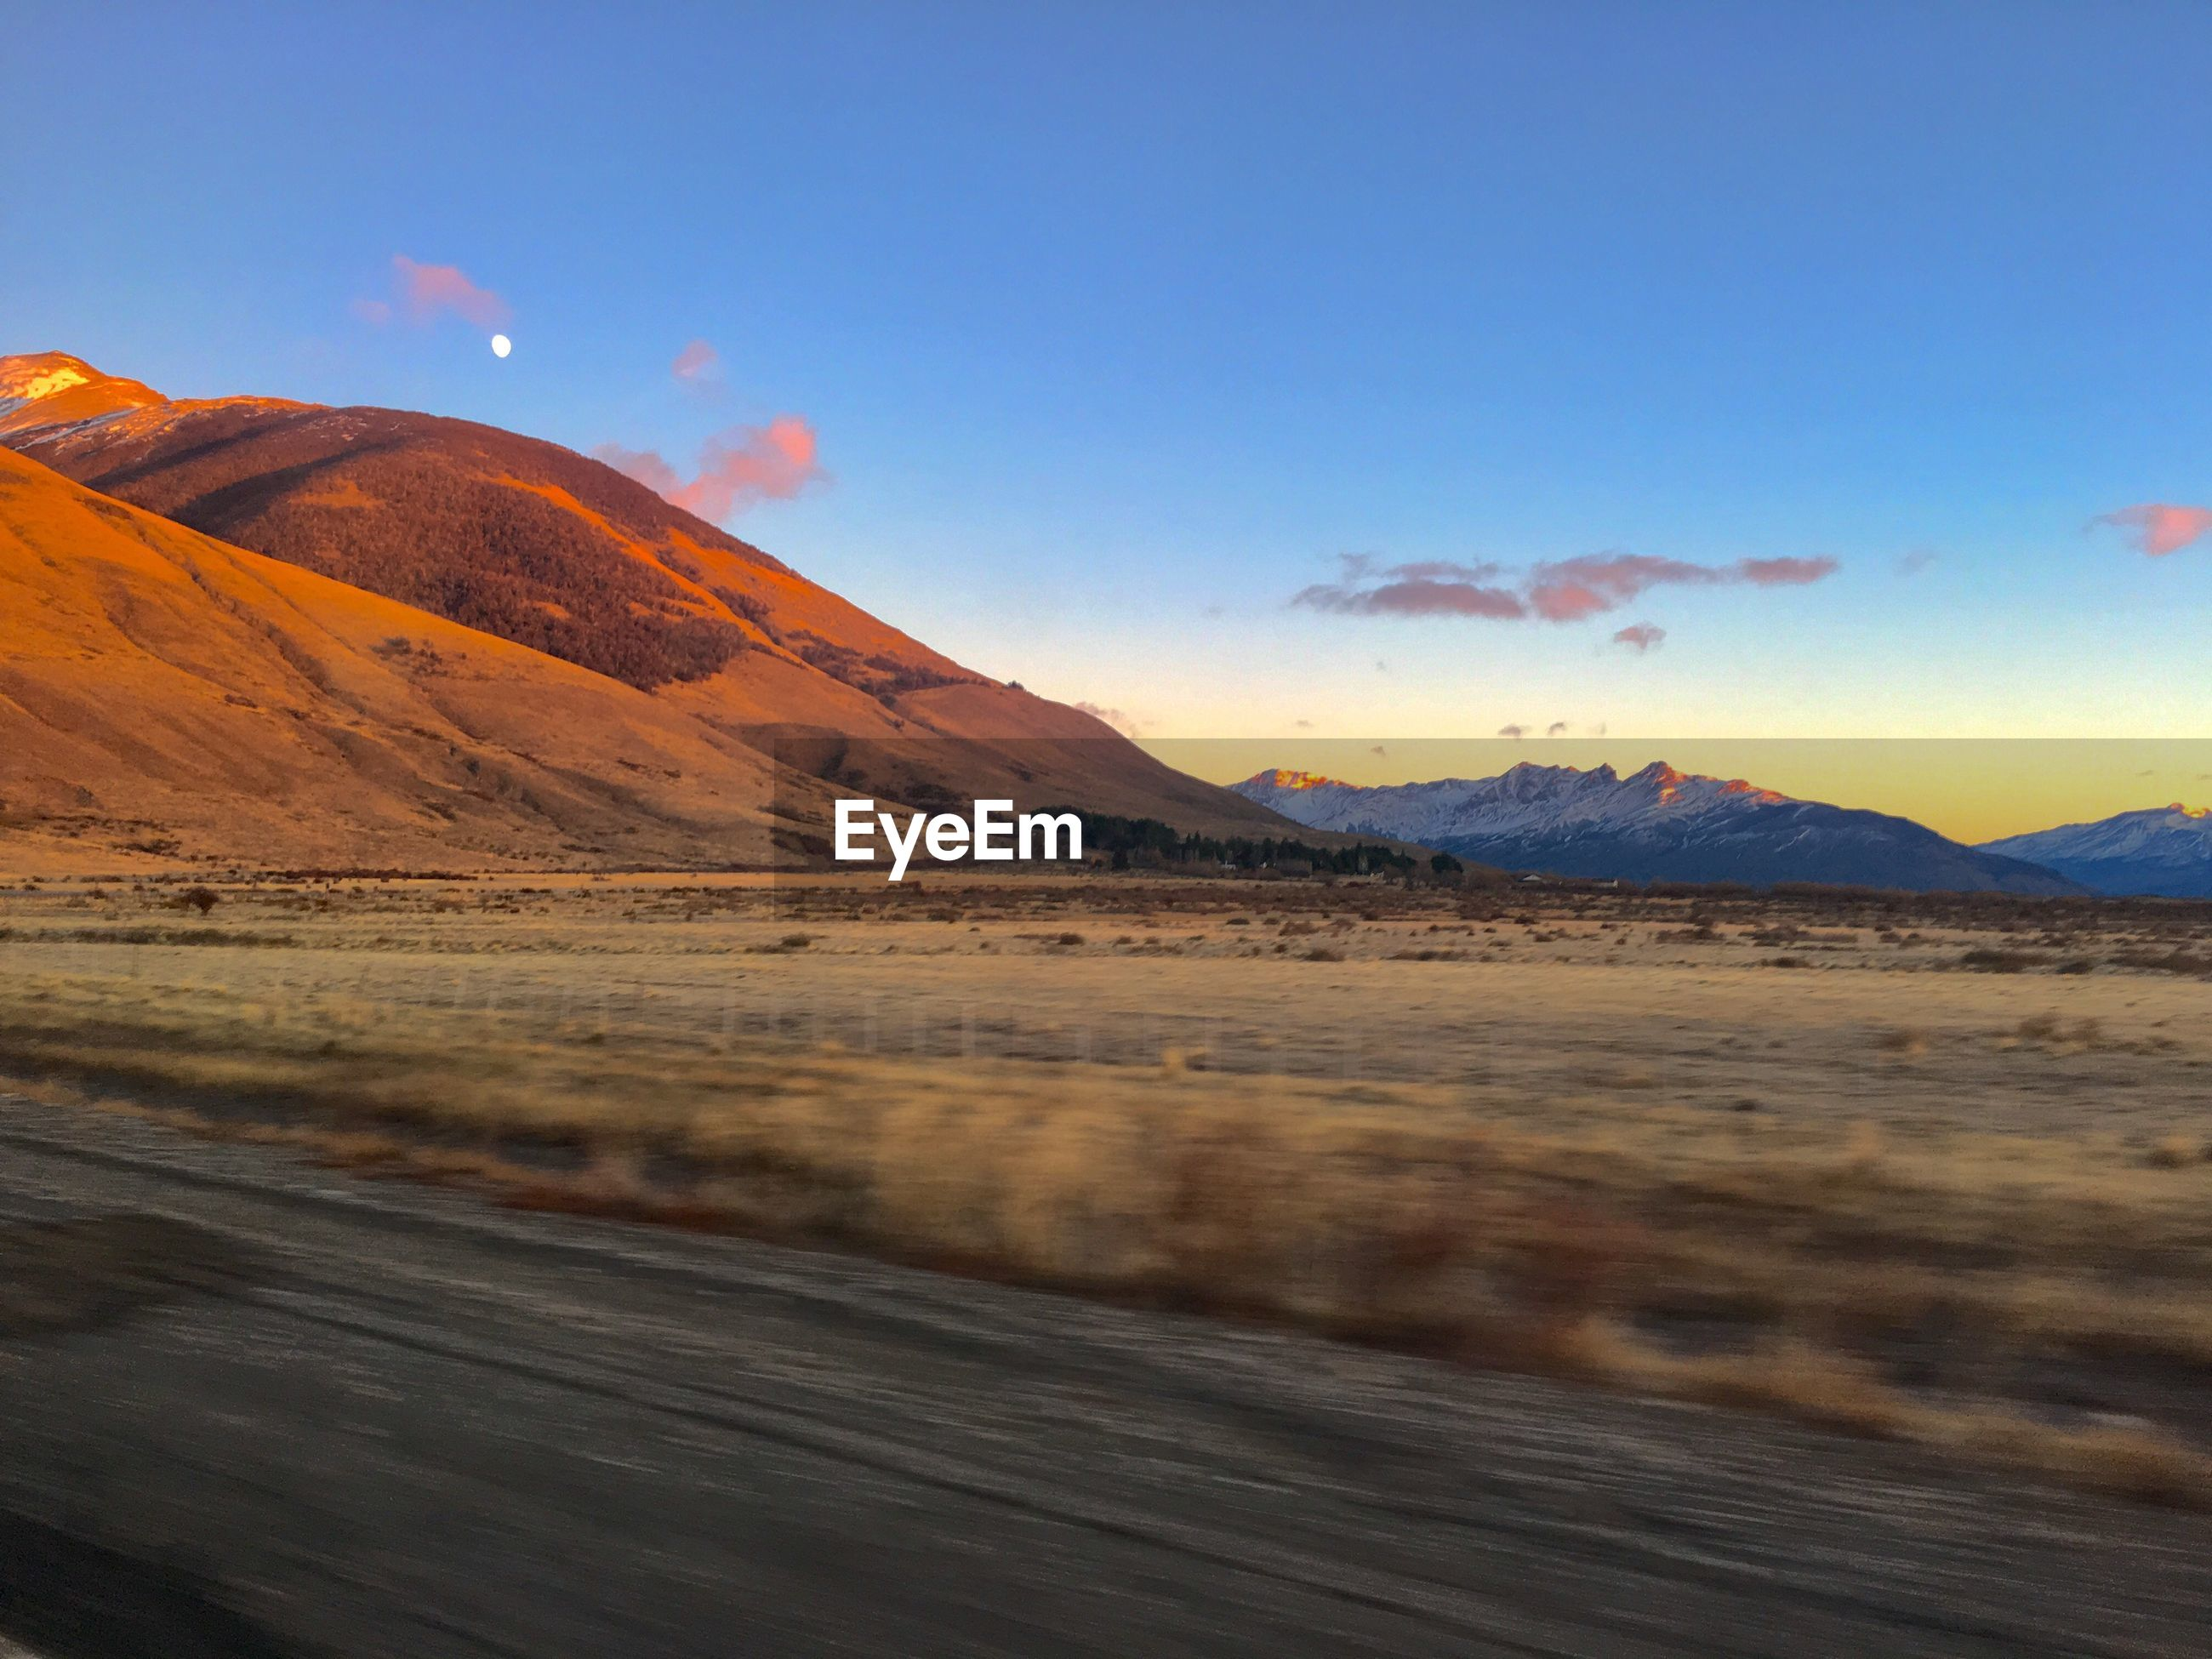 SCENIC VIEW OF ROAD BY MOUNTAINS AGAINST BLUE SKY